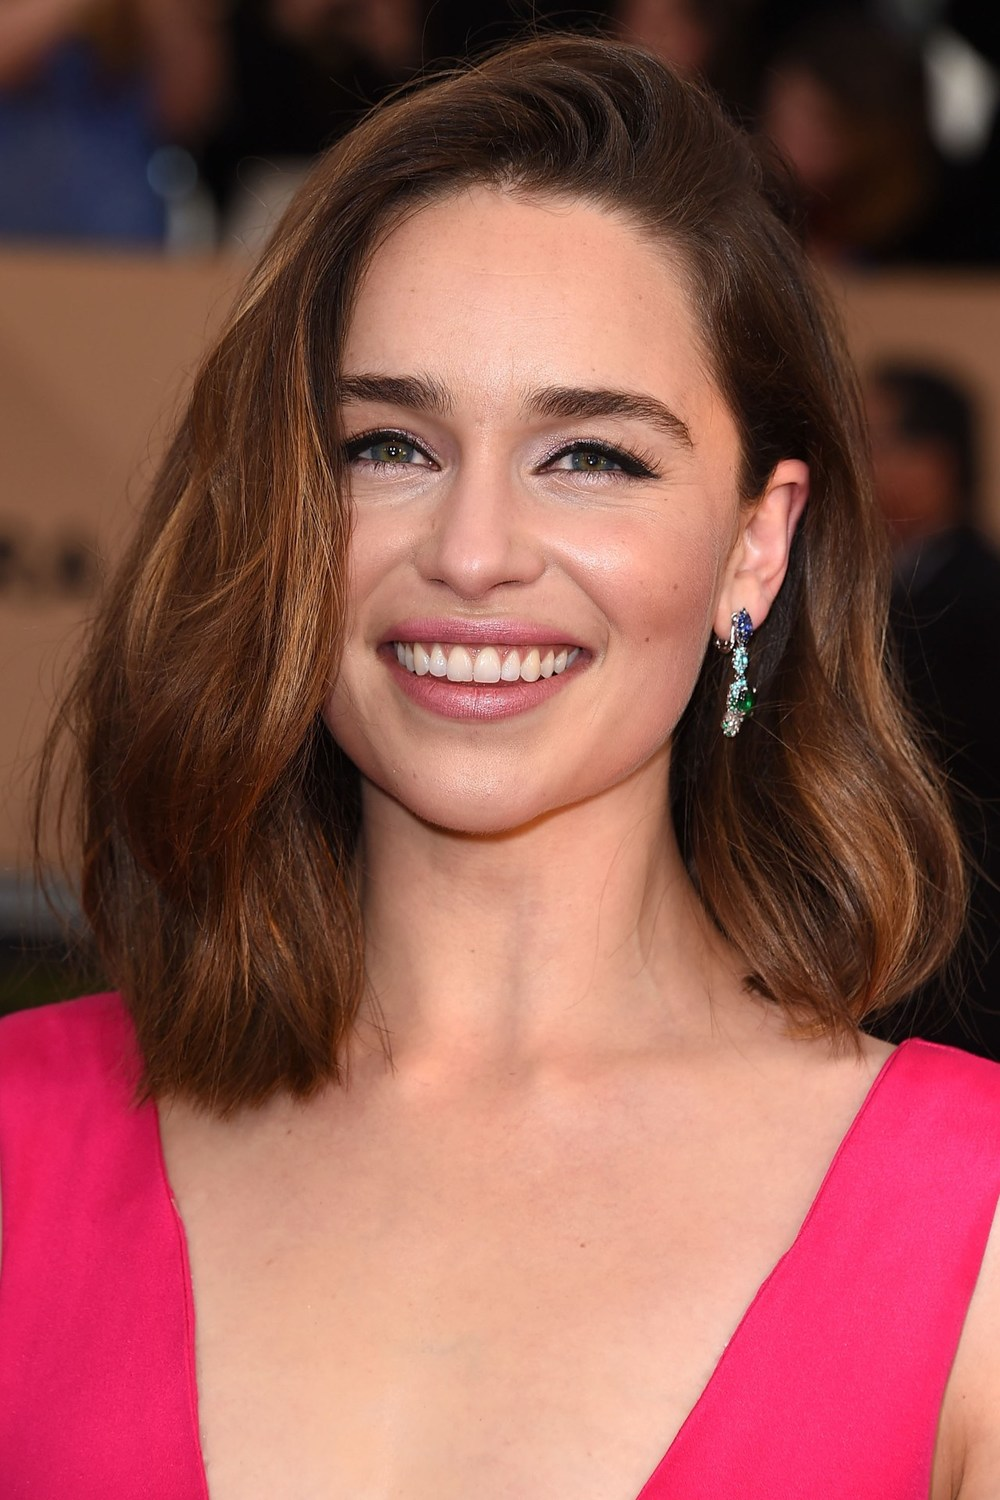 Emilia Clarke kept it simple with a little liquid liner, some soft-toned lipstick and eyeshadow and Bambi-like lashes made for a pretty red-carpet look for Emilia Clarke, whilst a tousled long bob felt like the perfect hairstyle when casually swept over to one side.